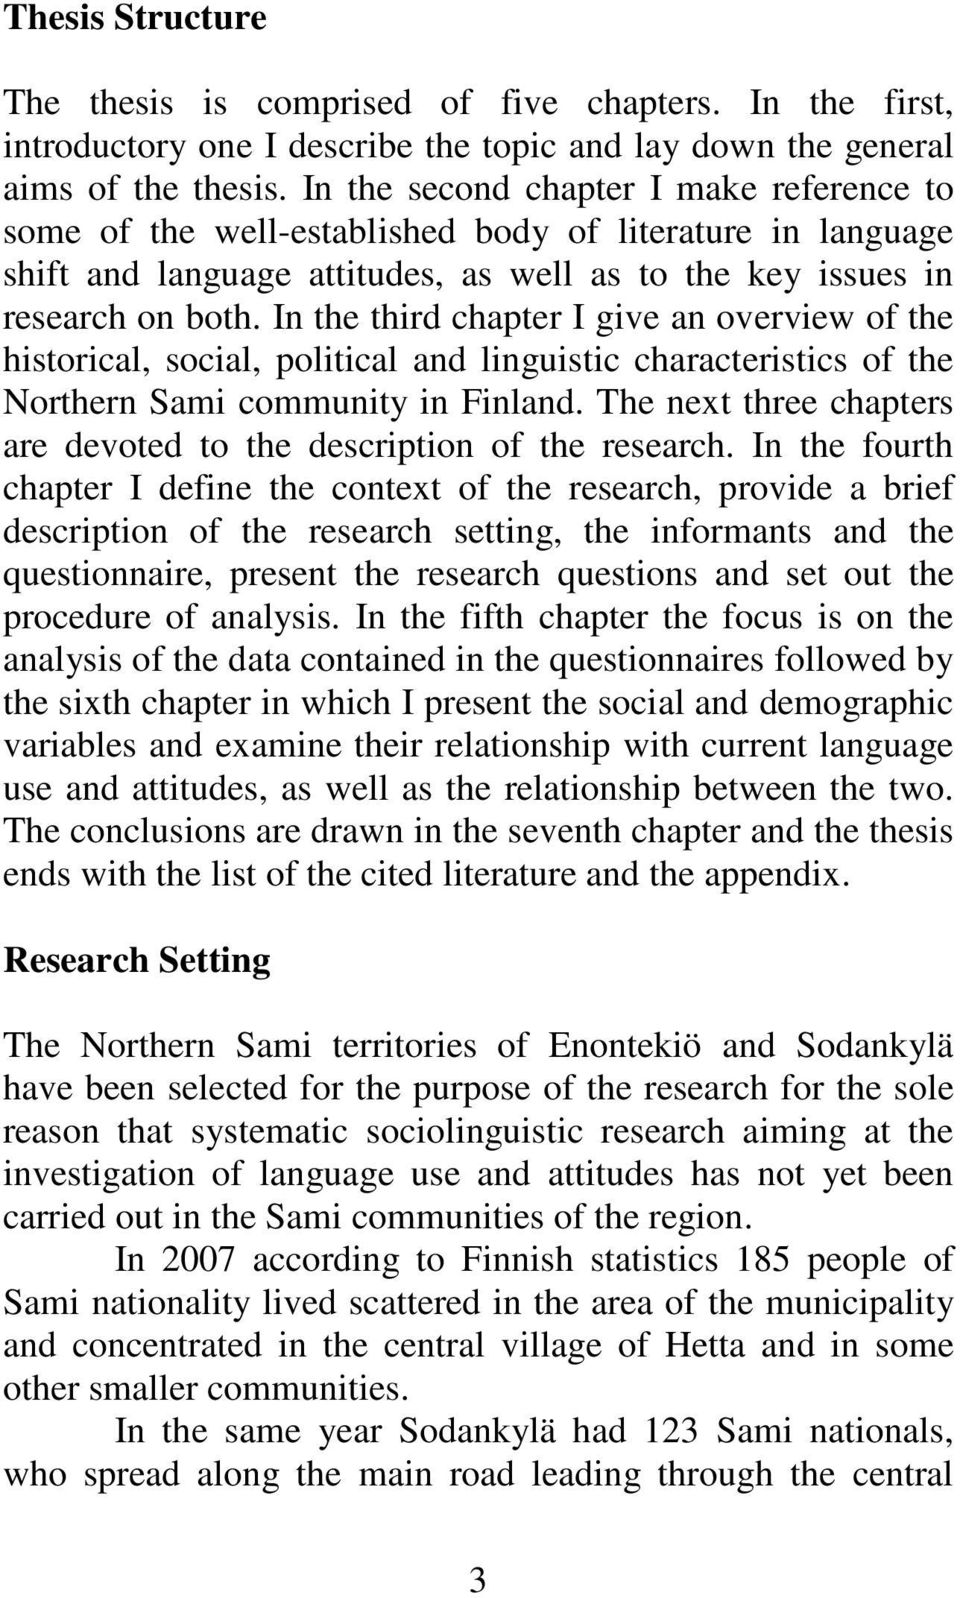 In the third chapter I give an overview of the historical, social, political and linguistic characteristics of the Northern Sami community in Finland.